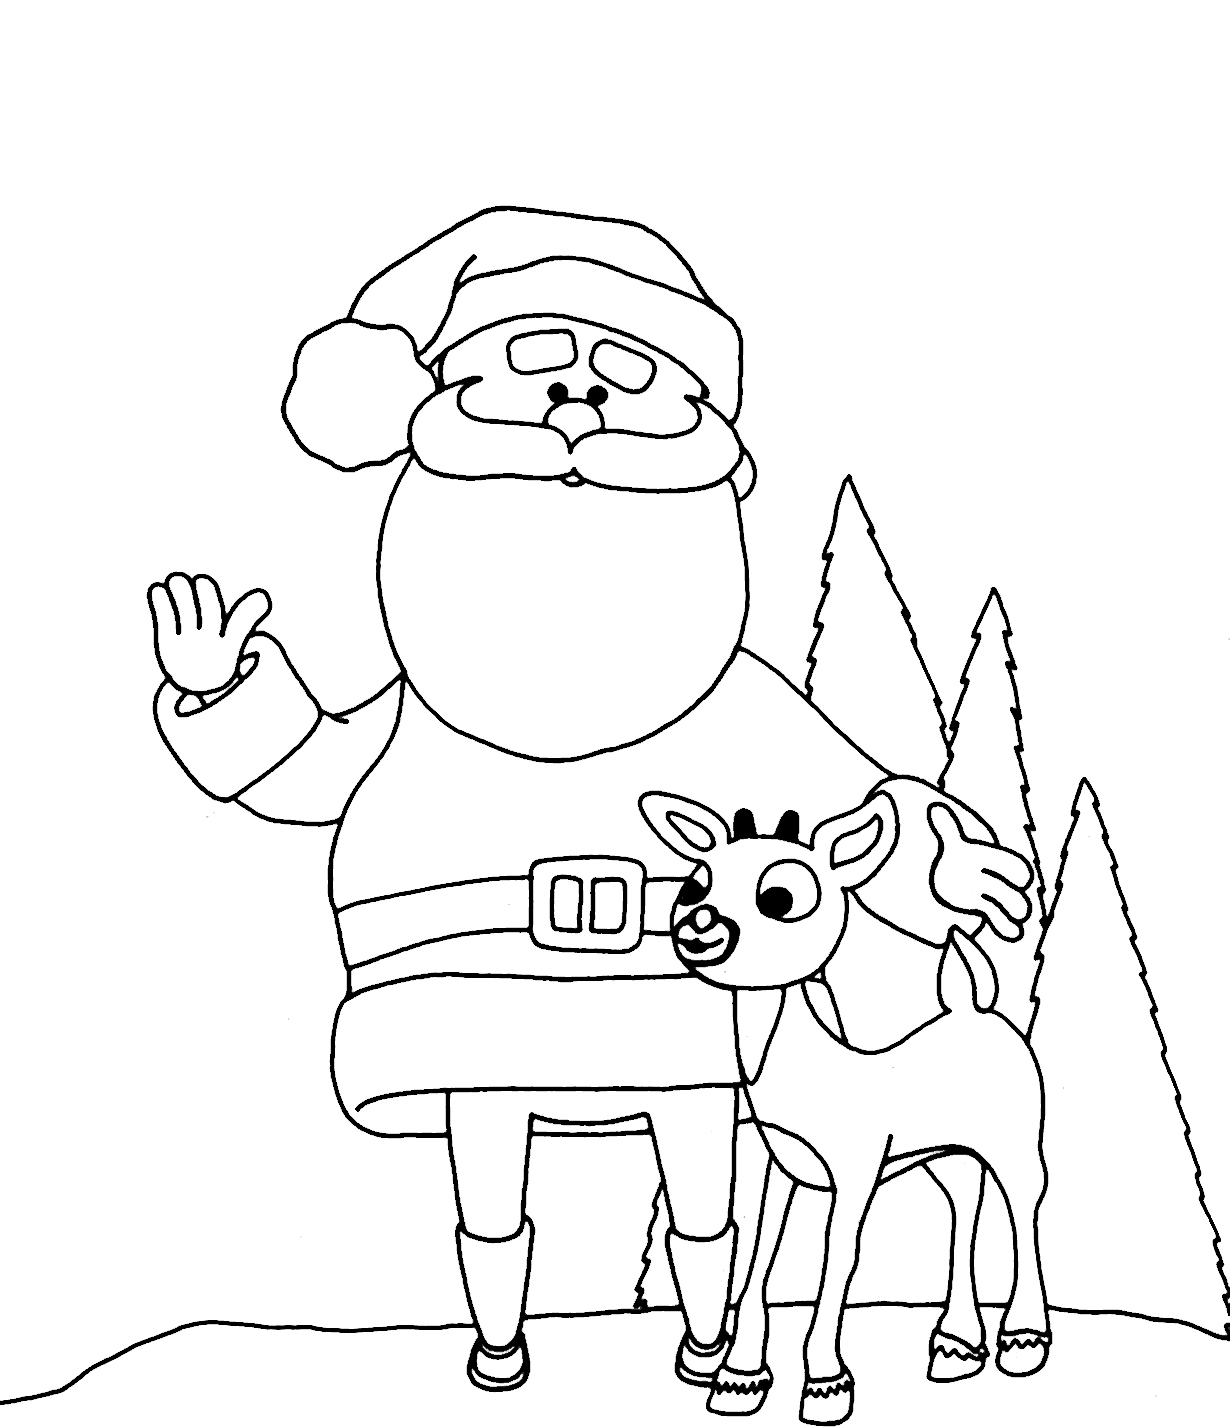 santa and reindeer coloring page for kids